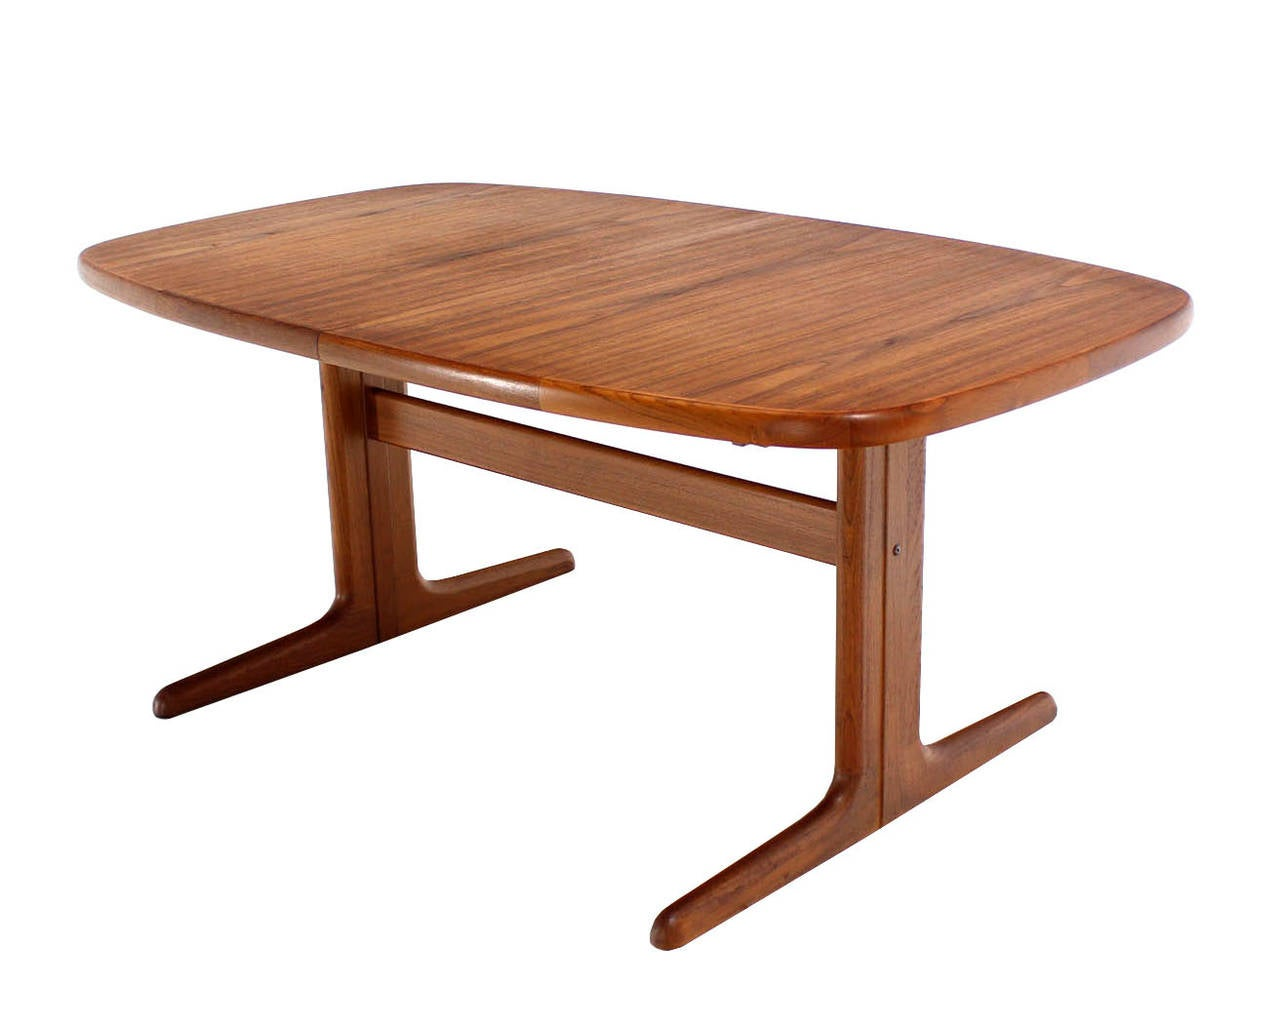 Danish modern teak dining room table with two leaves at for Dining room table for 2